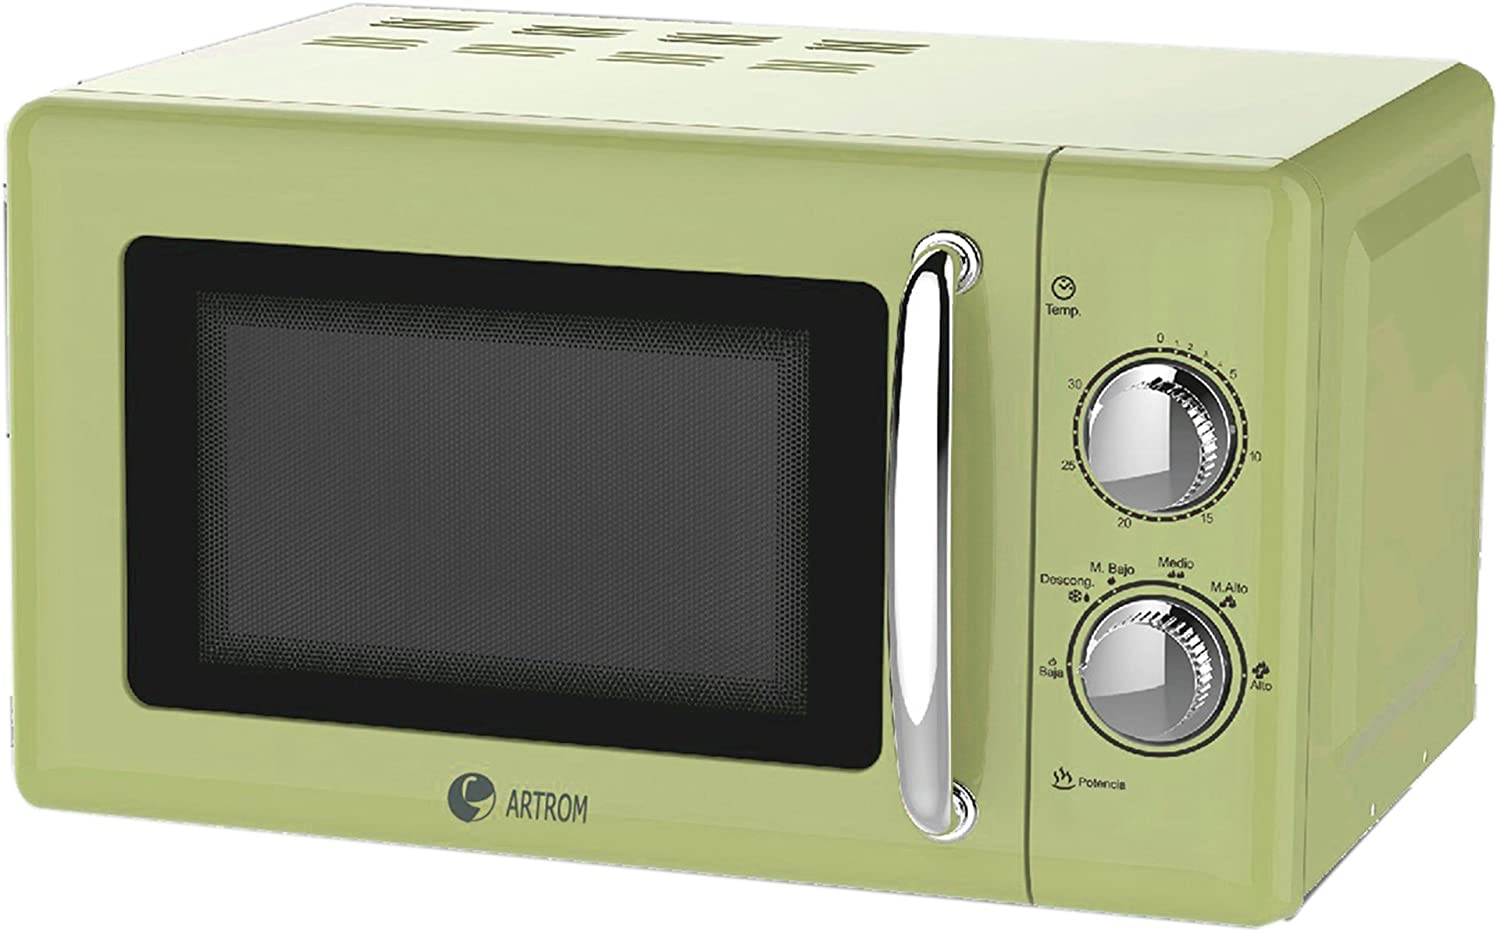 Artrom MM-720VML - Microondas retro, 700 W, color verde